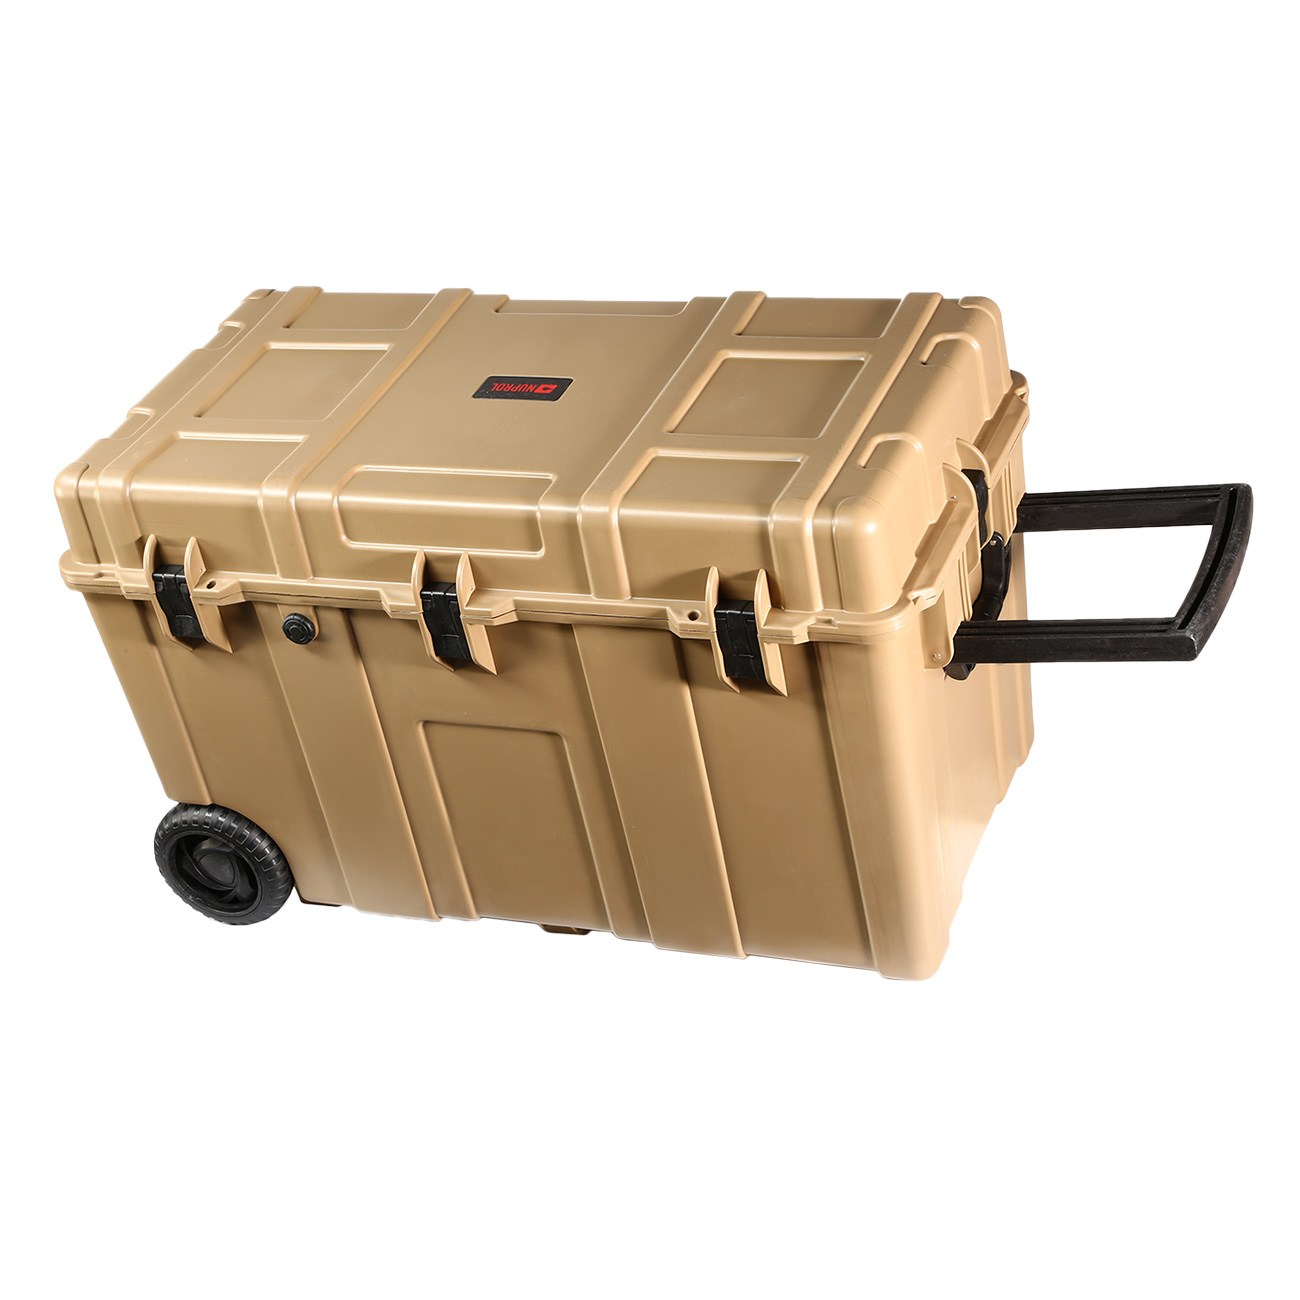 Nuprol Kit Box / Ultimate Hard Case Transport-Trolley 86 x 46 x 53 cm tan 5